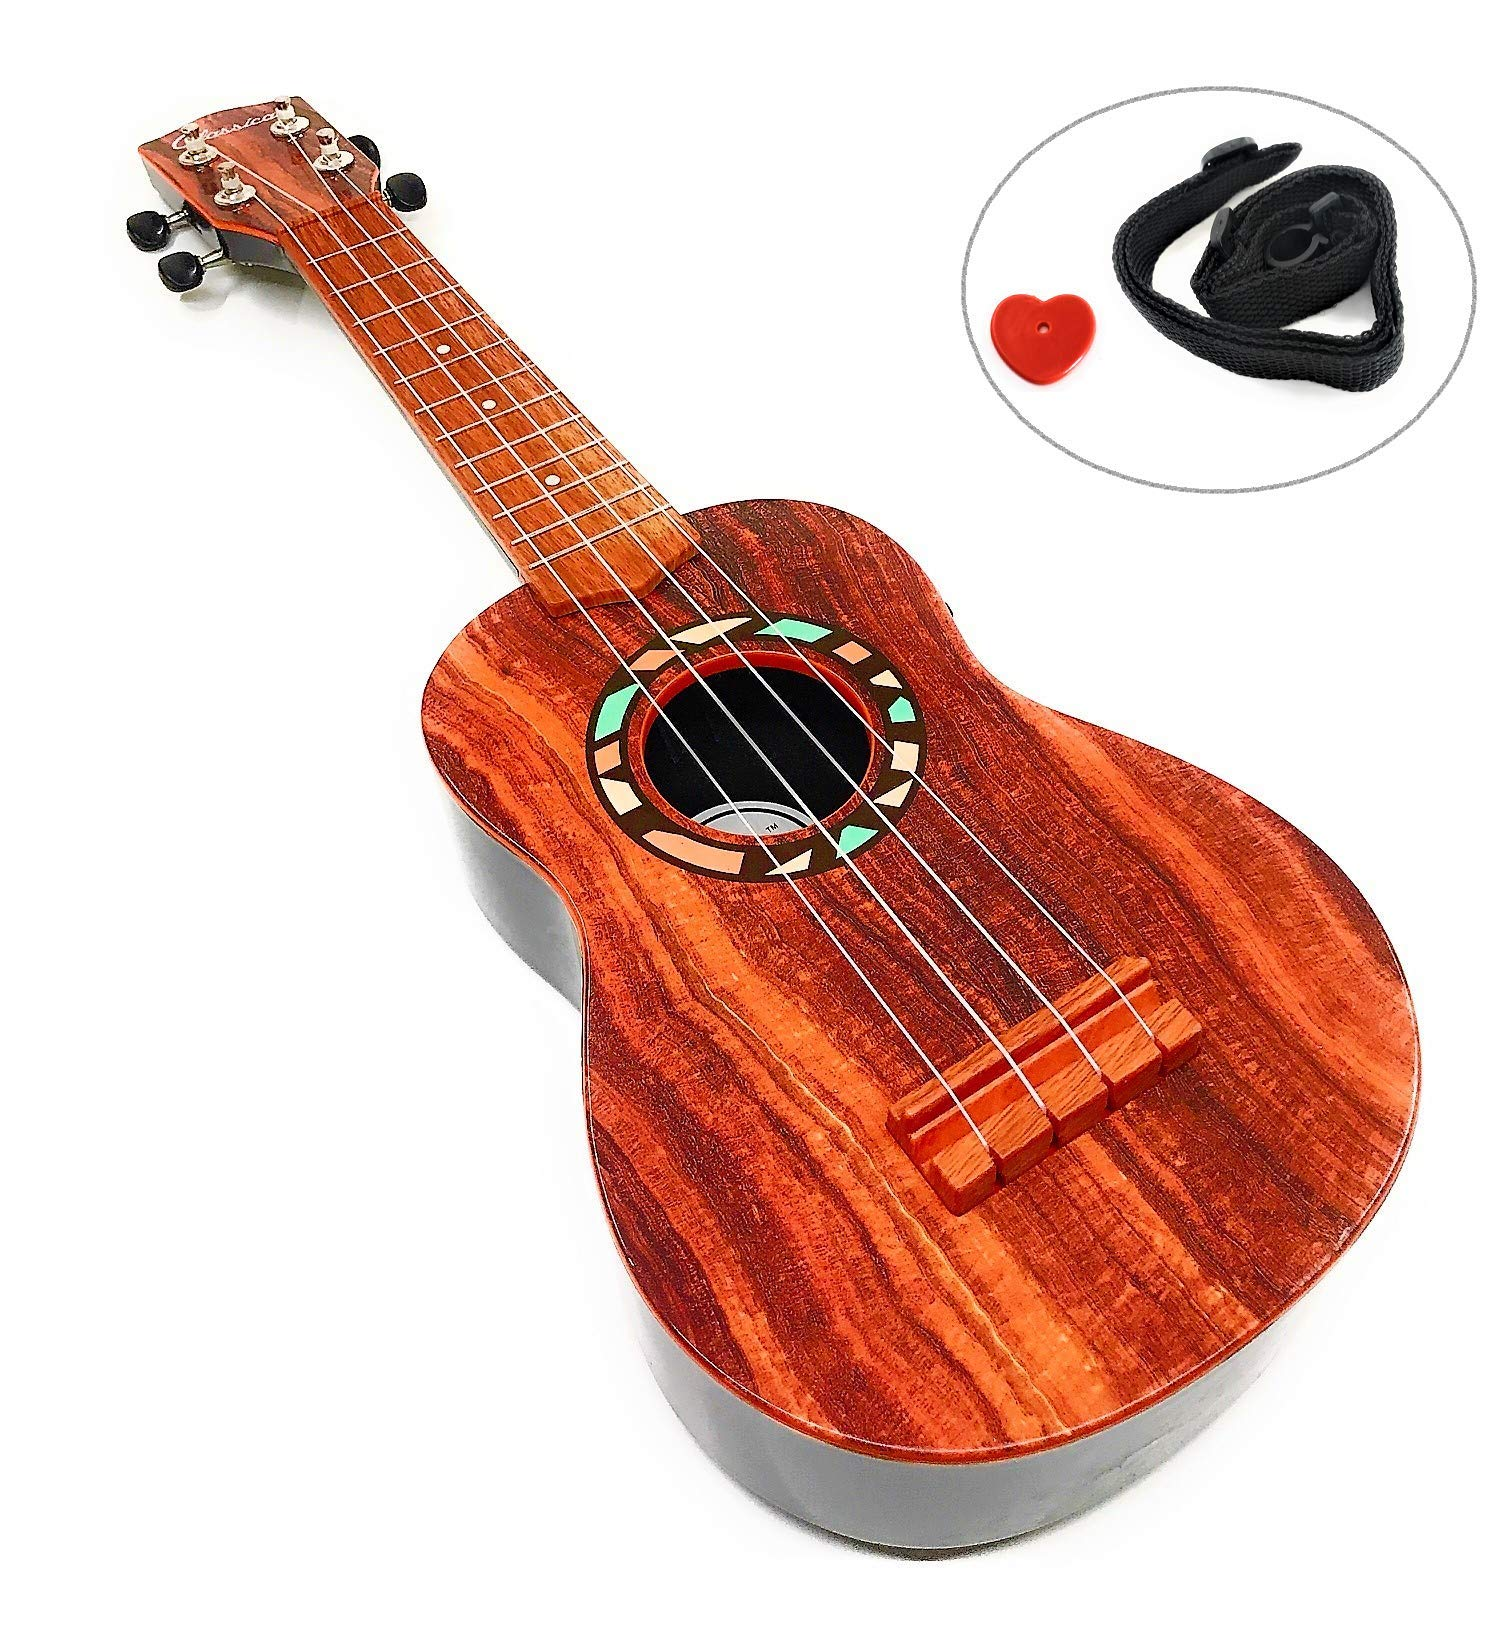 Kids 4 String Acoustic Classic Guitar Musical Instrument Toy w/ Ukulele Strap , Guitar Pick & Tunable Vibrant Ukulele Sounds , Acoustic Guitar for Ages 3+ (21'')